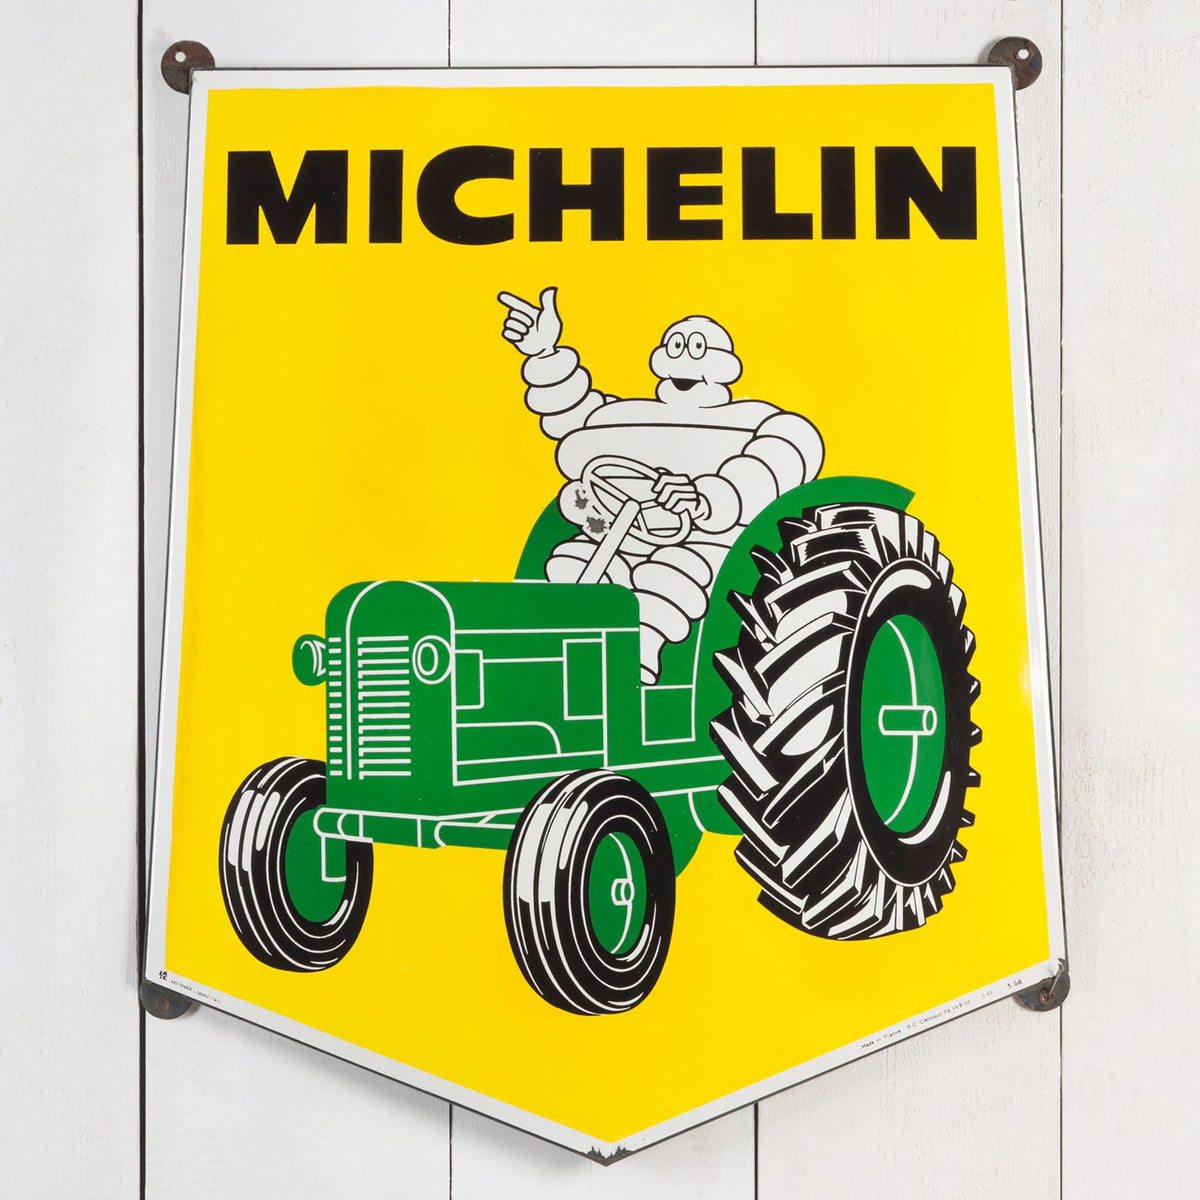 Michelin Tractor Tyres Enamel Sign